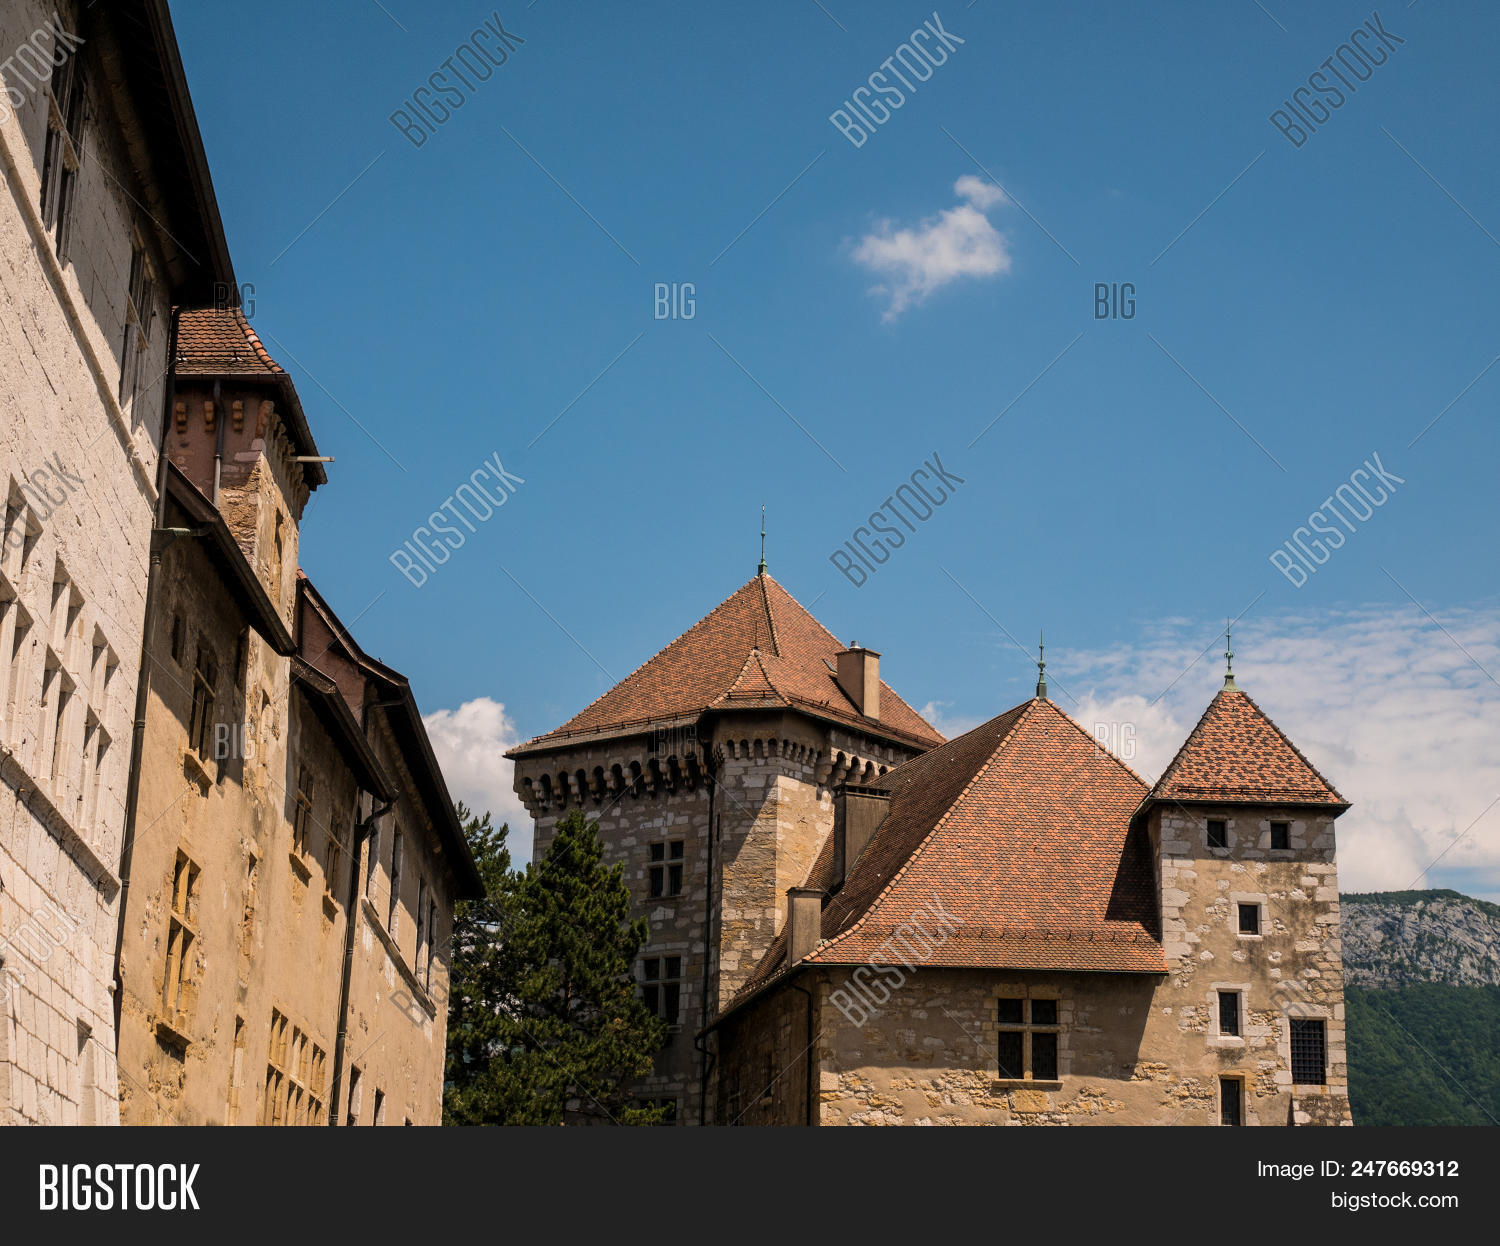 alps,ancient,annecy,architecture,blue,bridge,building,canal,castle,chateau,city,dark,europa,europe,european,exterior,famous,france,french,haute-savoie,historic,house,illuminated,isle,lake,landmark,light,medieval,mountain,night,old,outdoors,palace,palais,prison,reflection,rhone-alpes,river,savoie,sky,stone,street,tour,tourism,tower,town,travel,urban,village,water